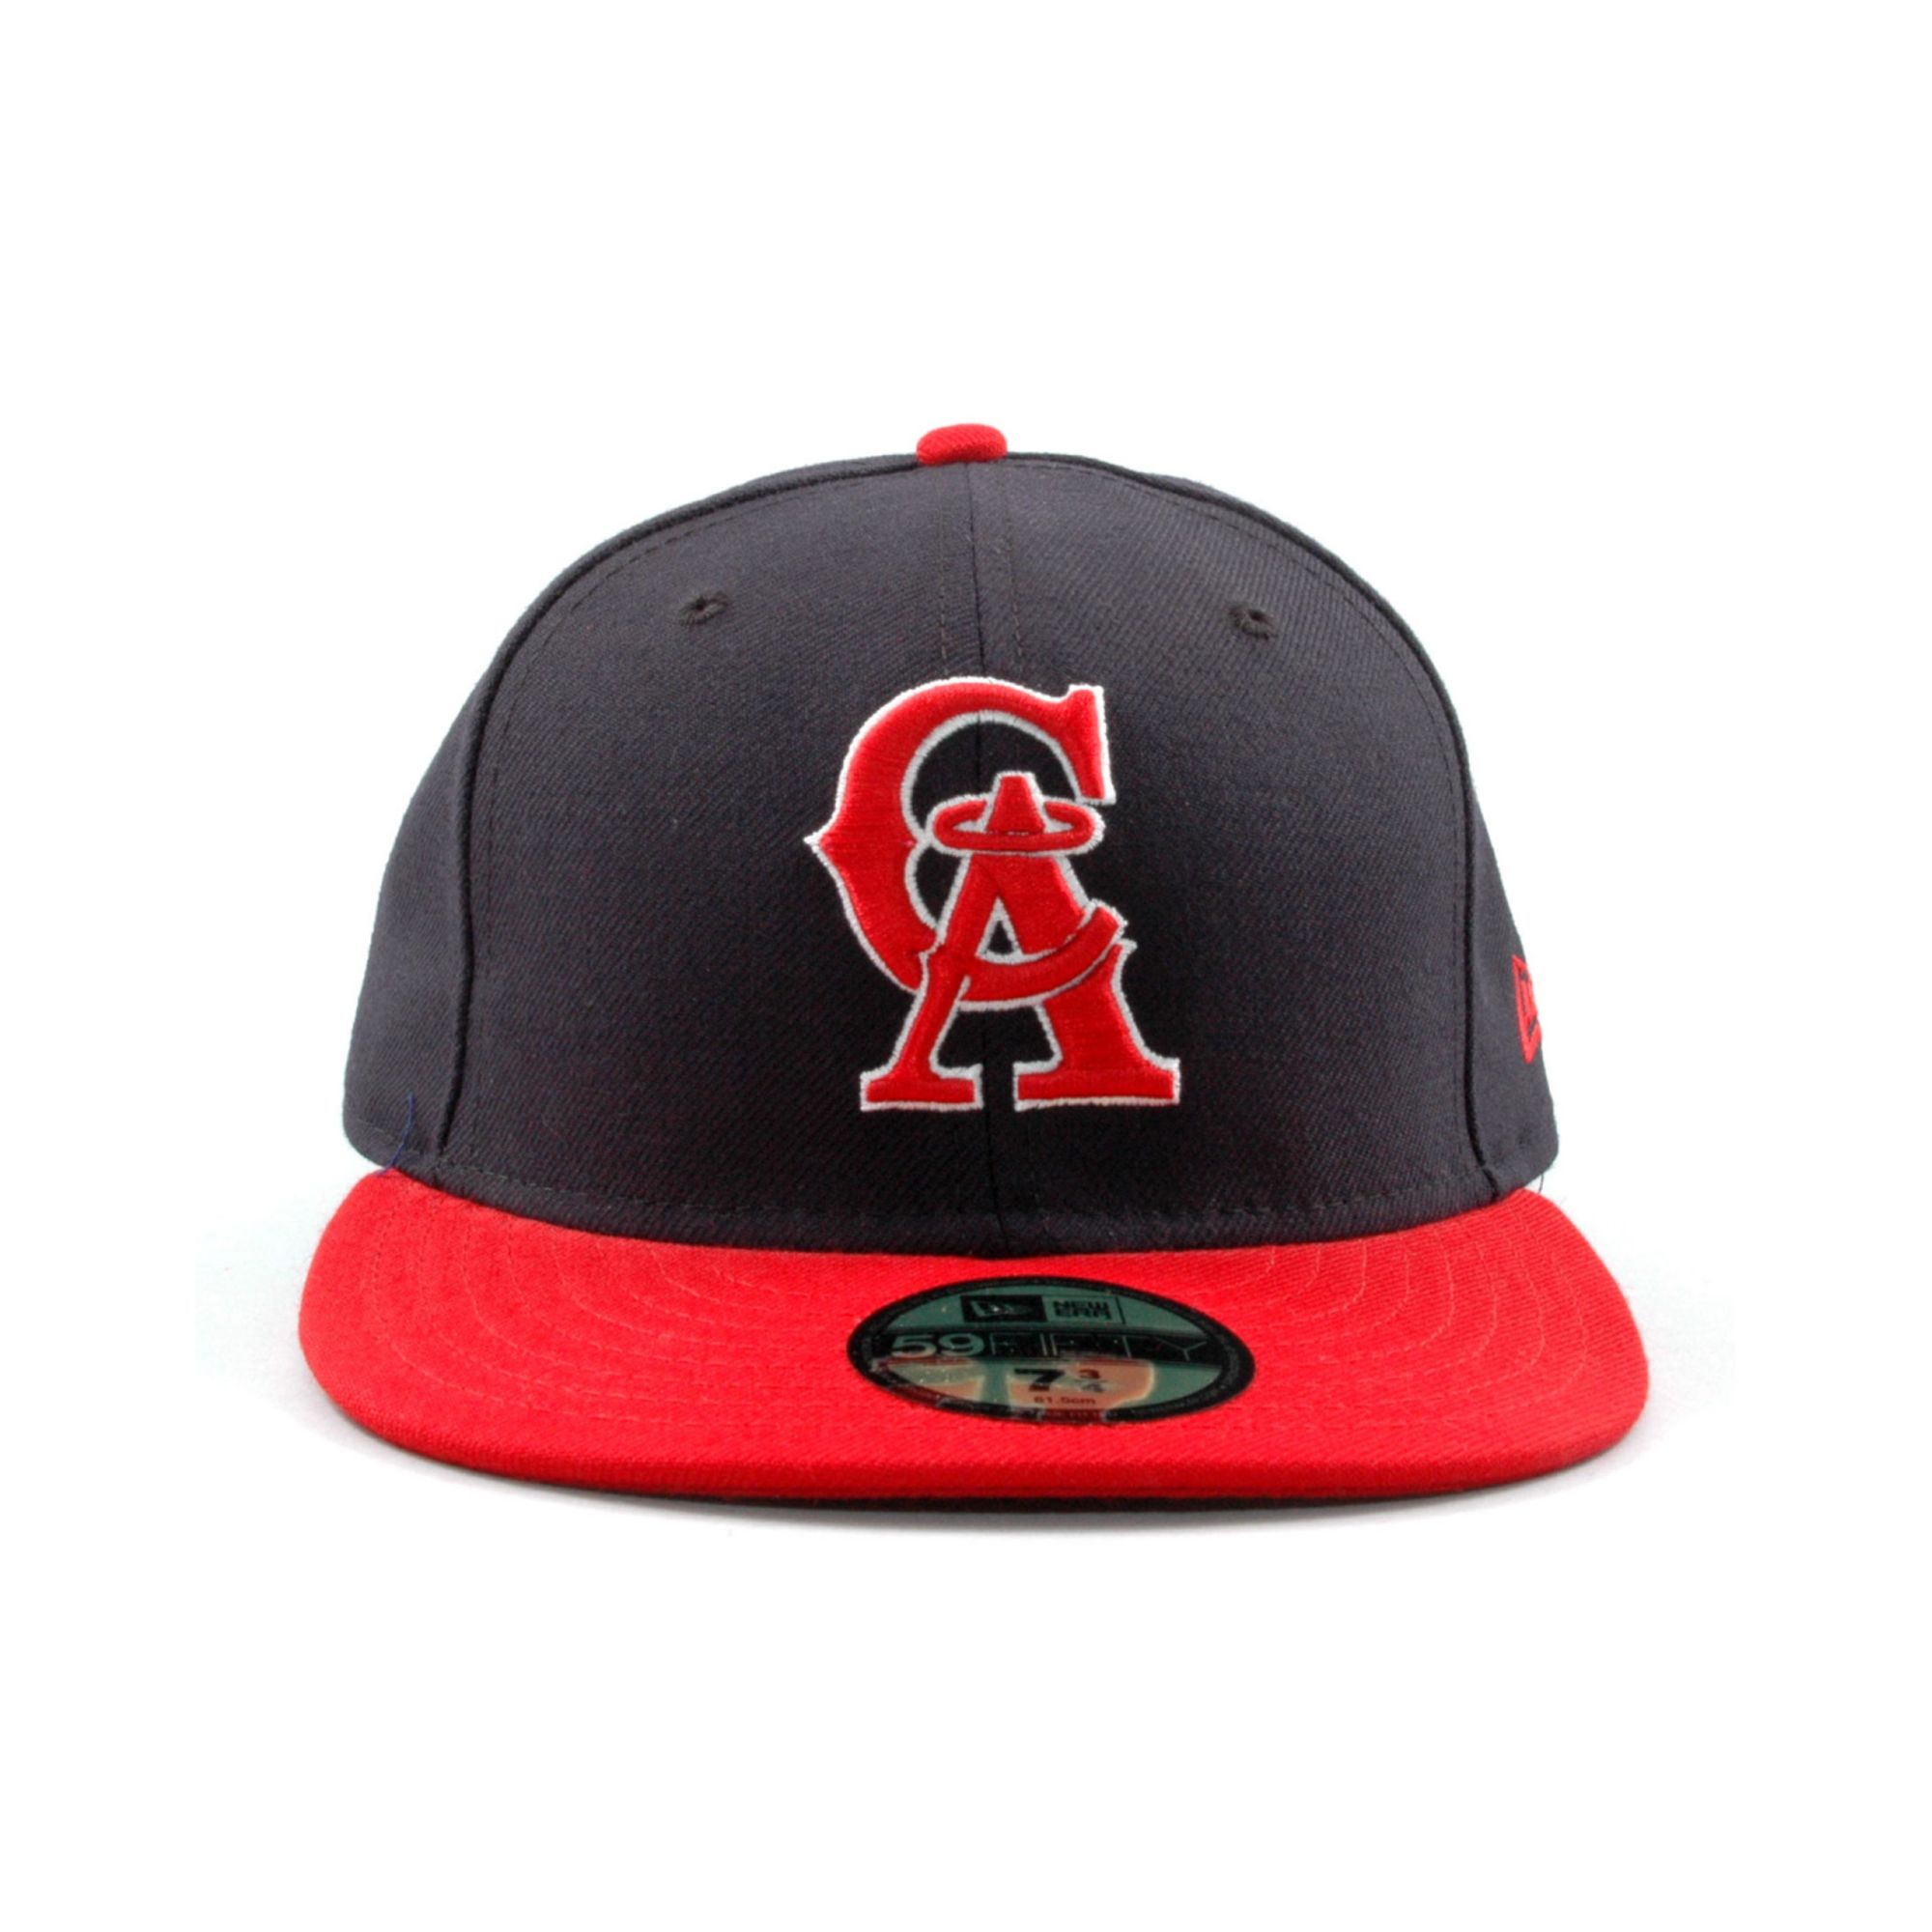 watch 132e4 87b55 KTZ Los Angeles Angels Of Anaheim Mlb Cooperstown 59fifty Cap in ...